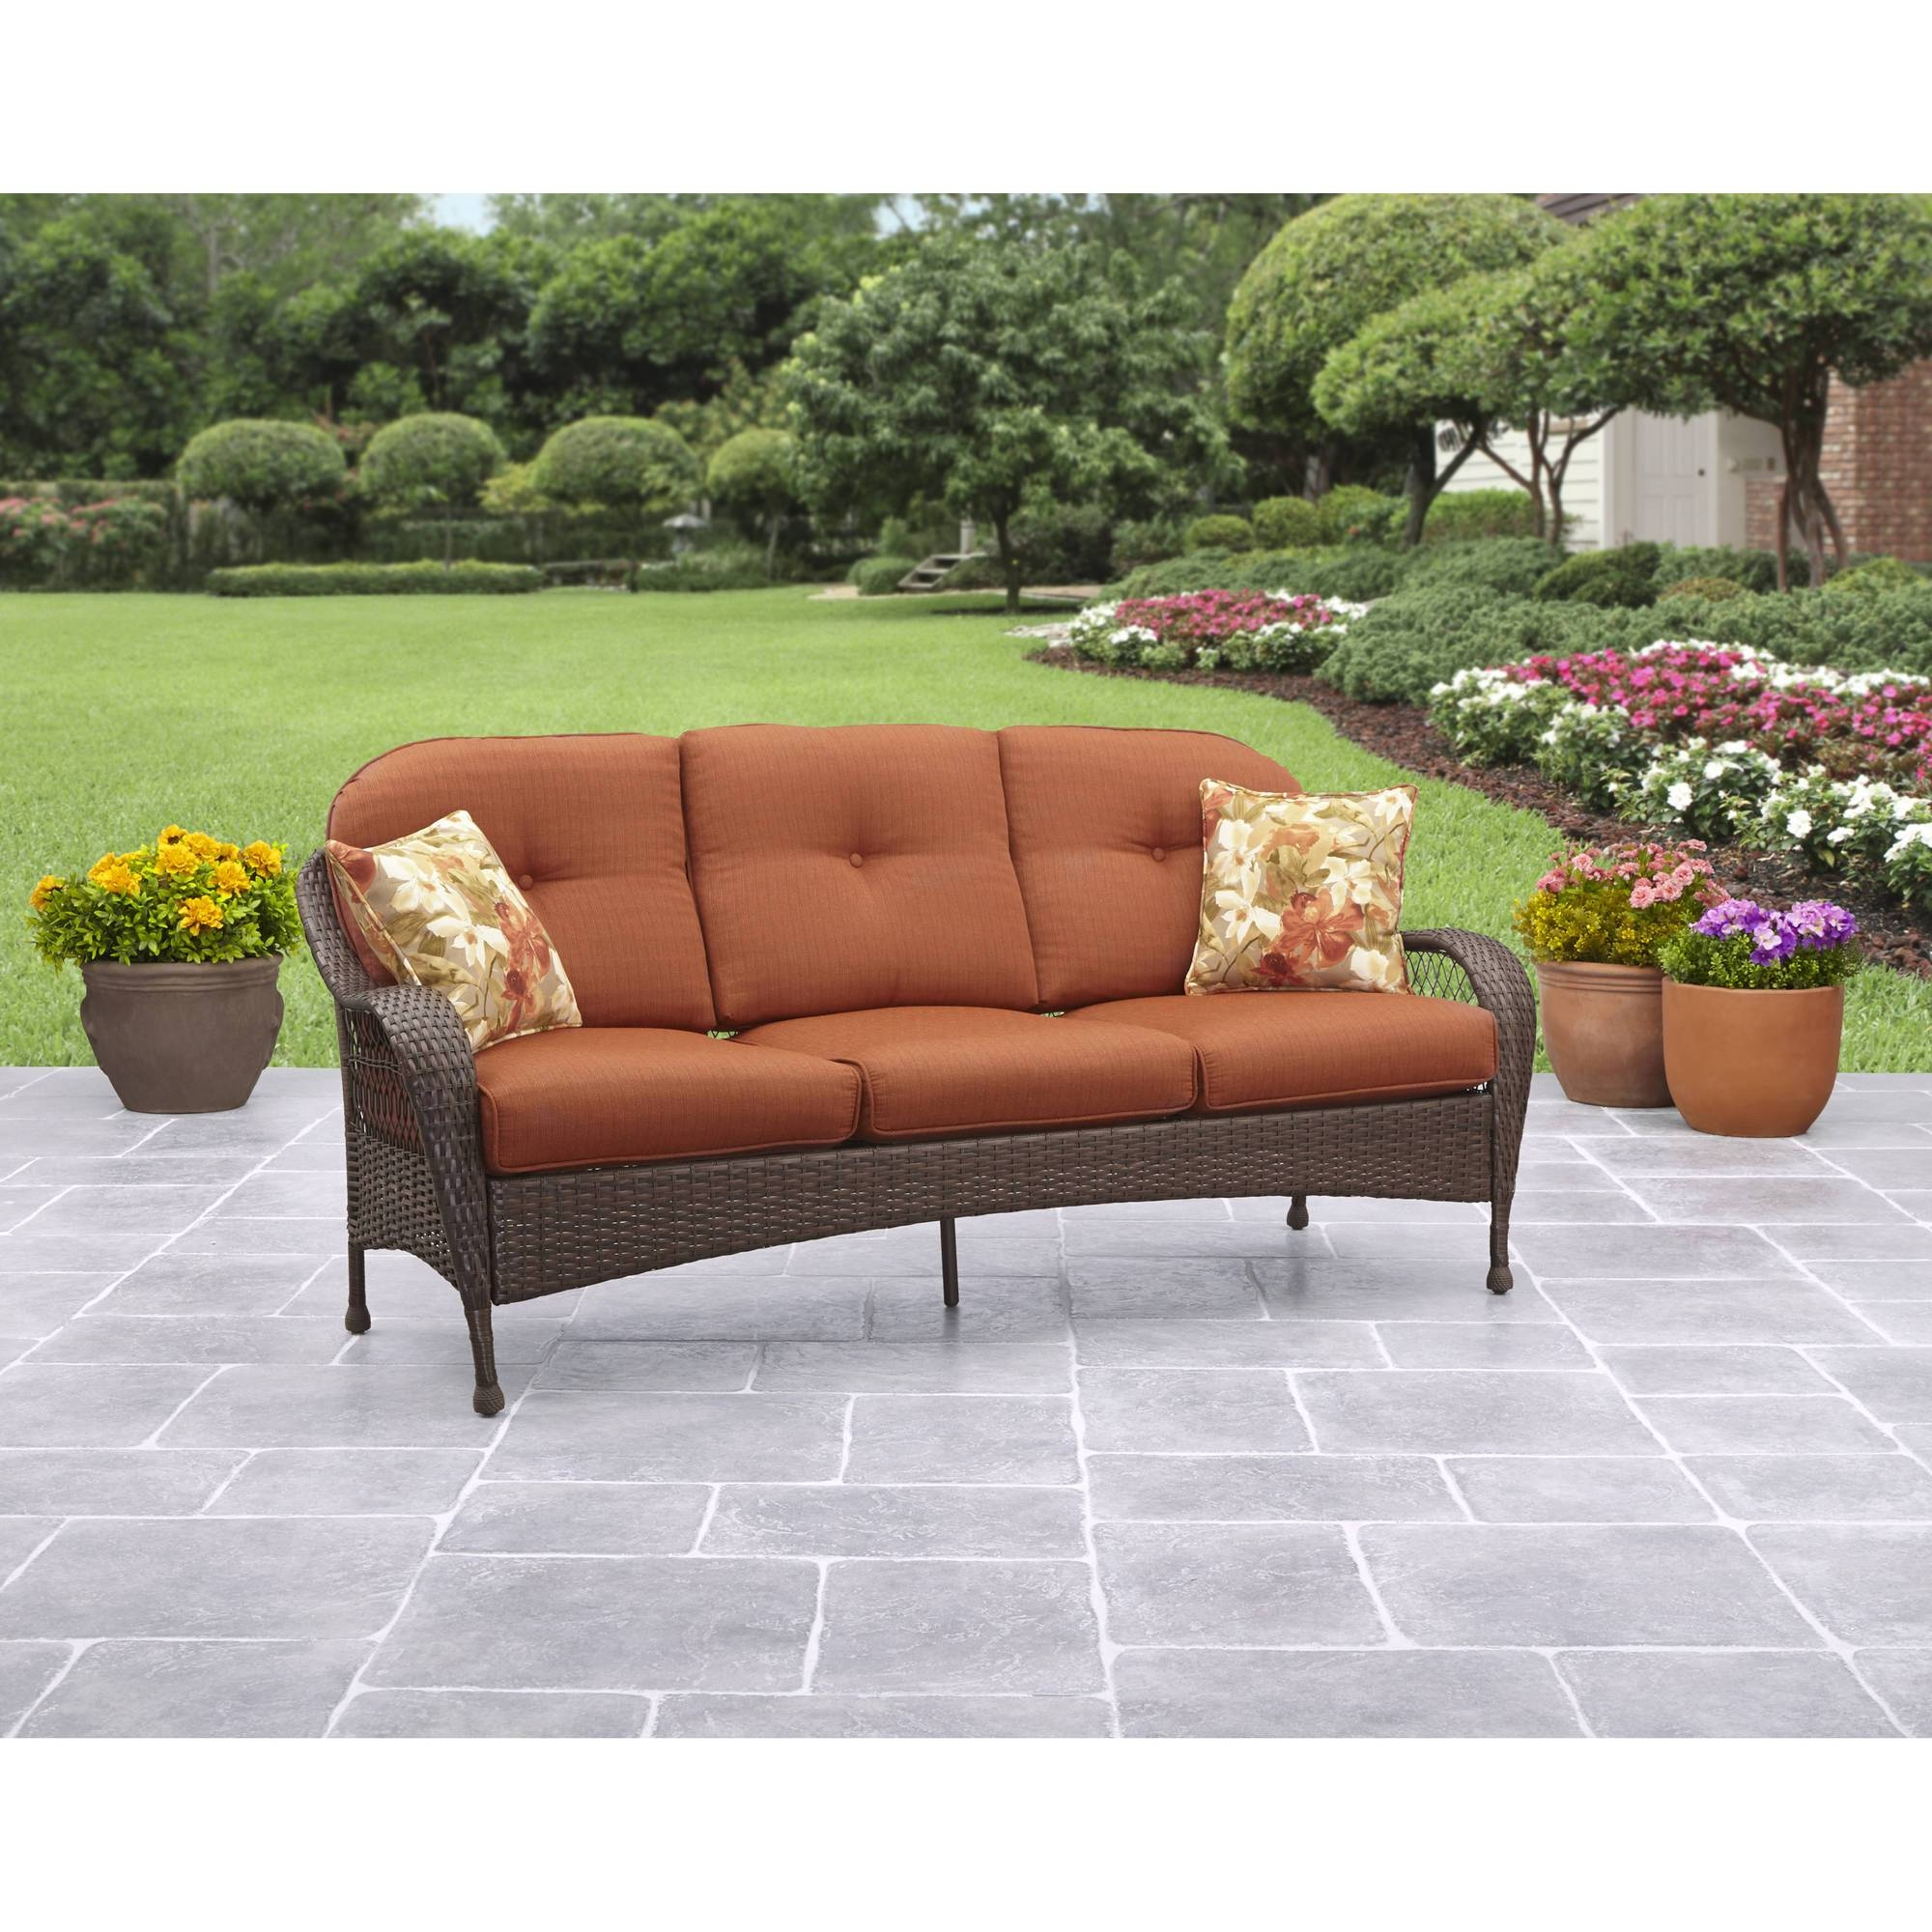 Better Homes And Gardens Azalea Ridge Outdoor Sofa, Seats 3 for Outdoor Sofa Chairs (Image 8 of 30)